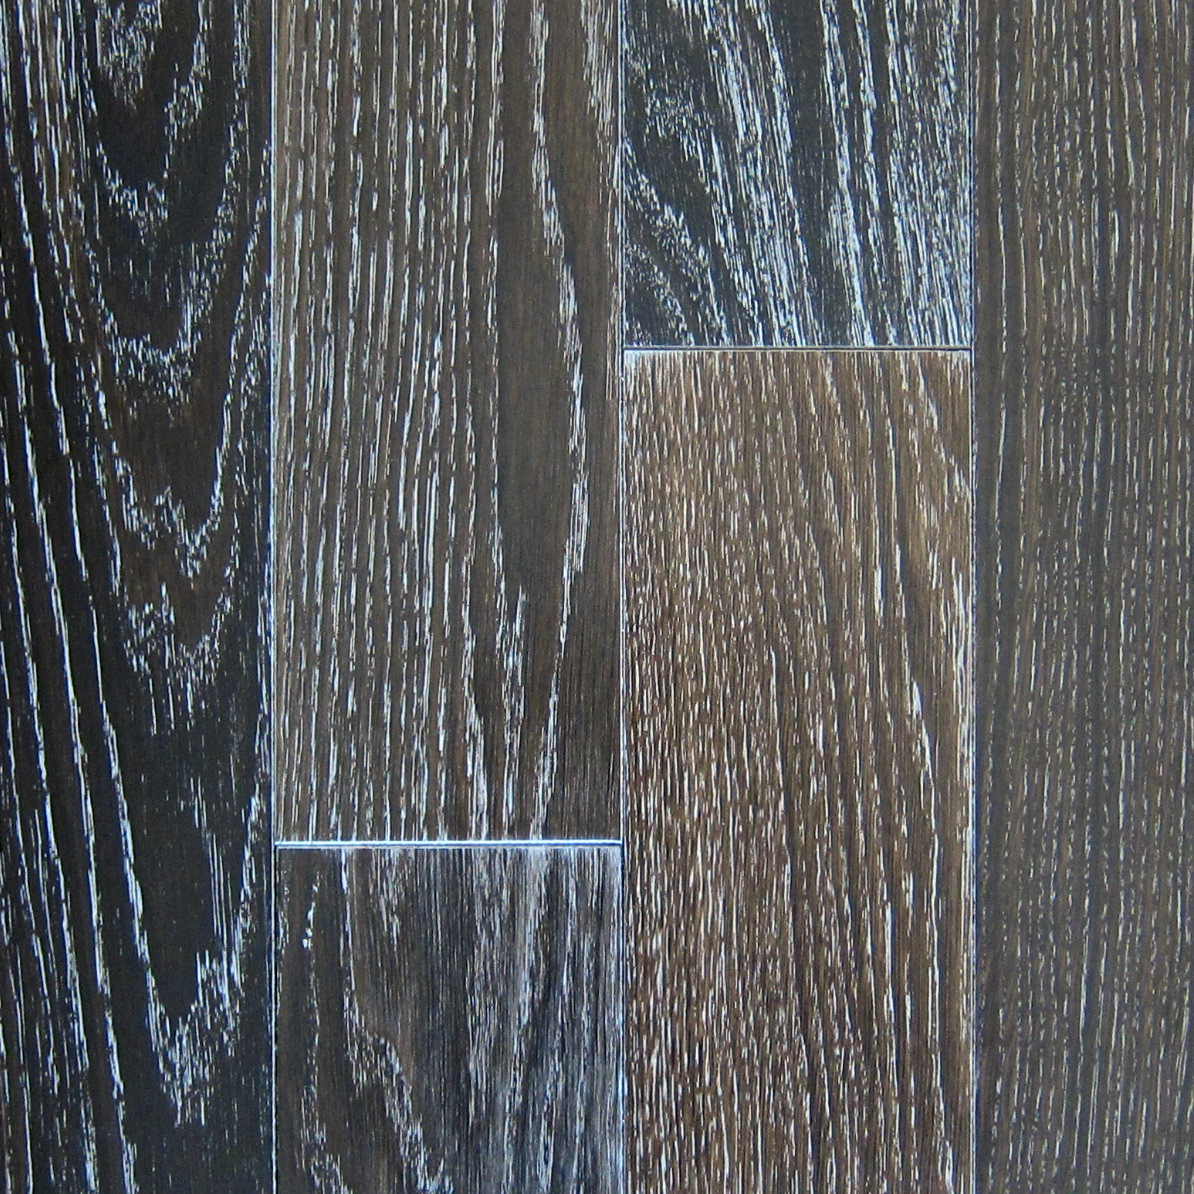 Acrylic Impregnated Wood Flooring By Nydree Flooring